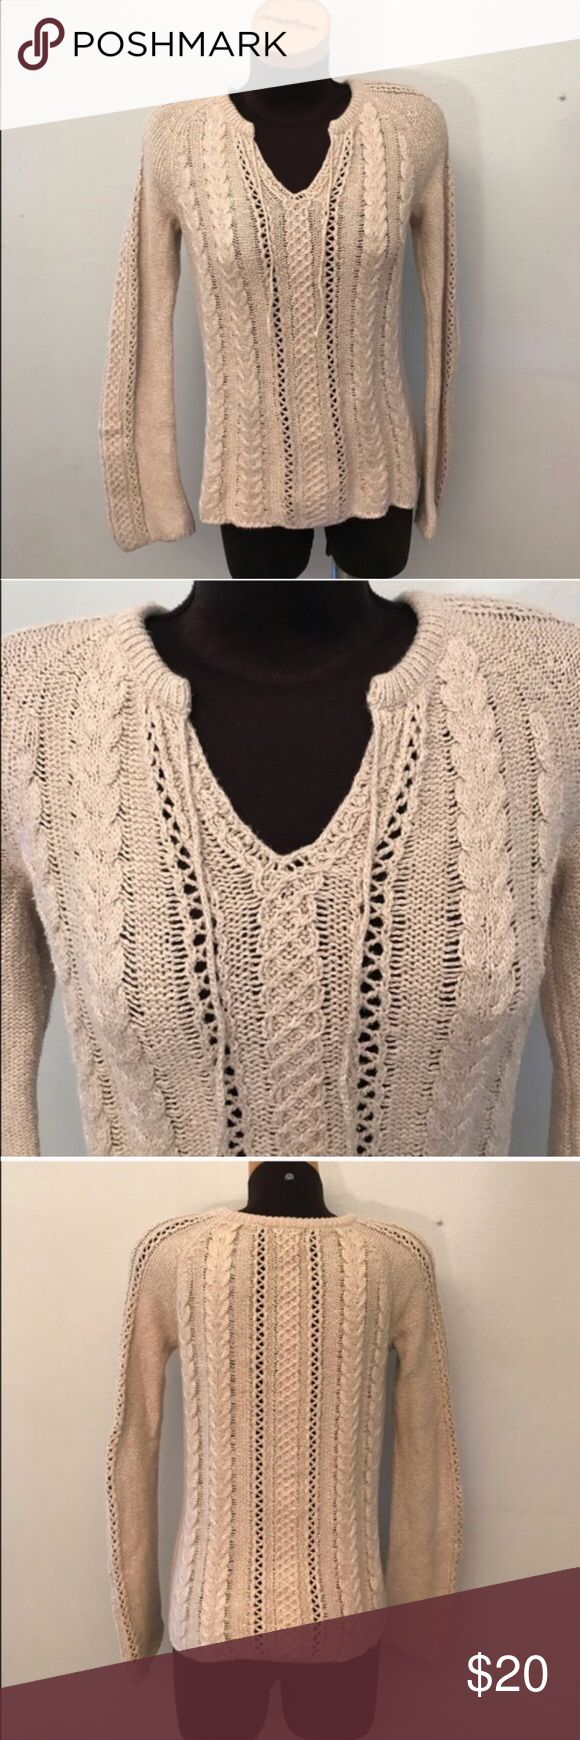 ⚡️4.99 SHIP⚡️American Eagle tan sweater Great condition! American Eagle Outfitters Sweaters V-Necks